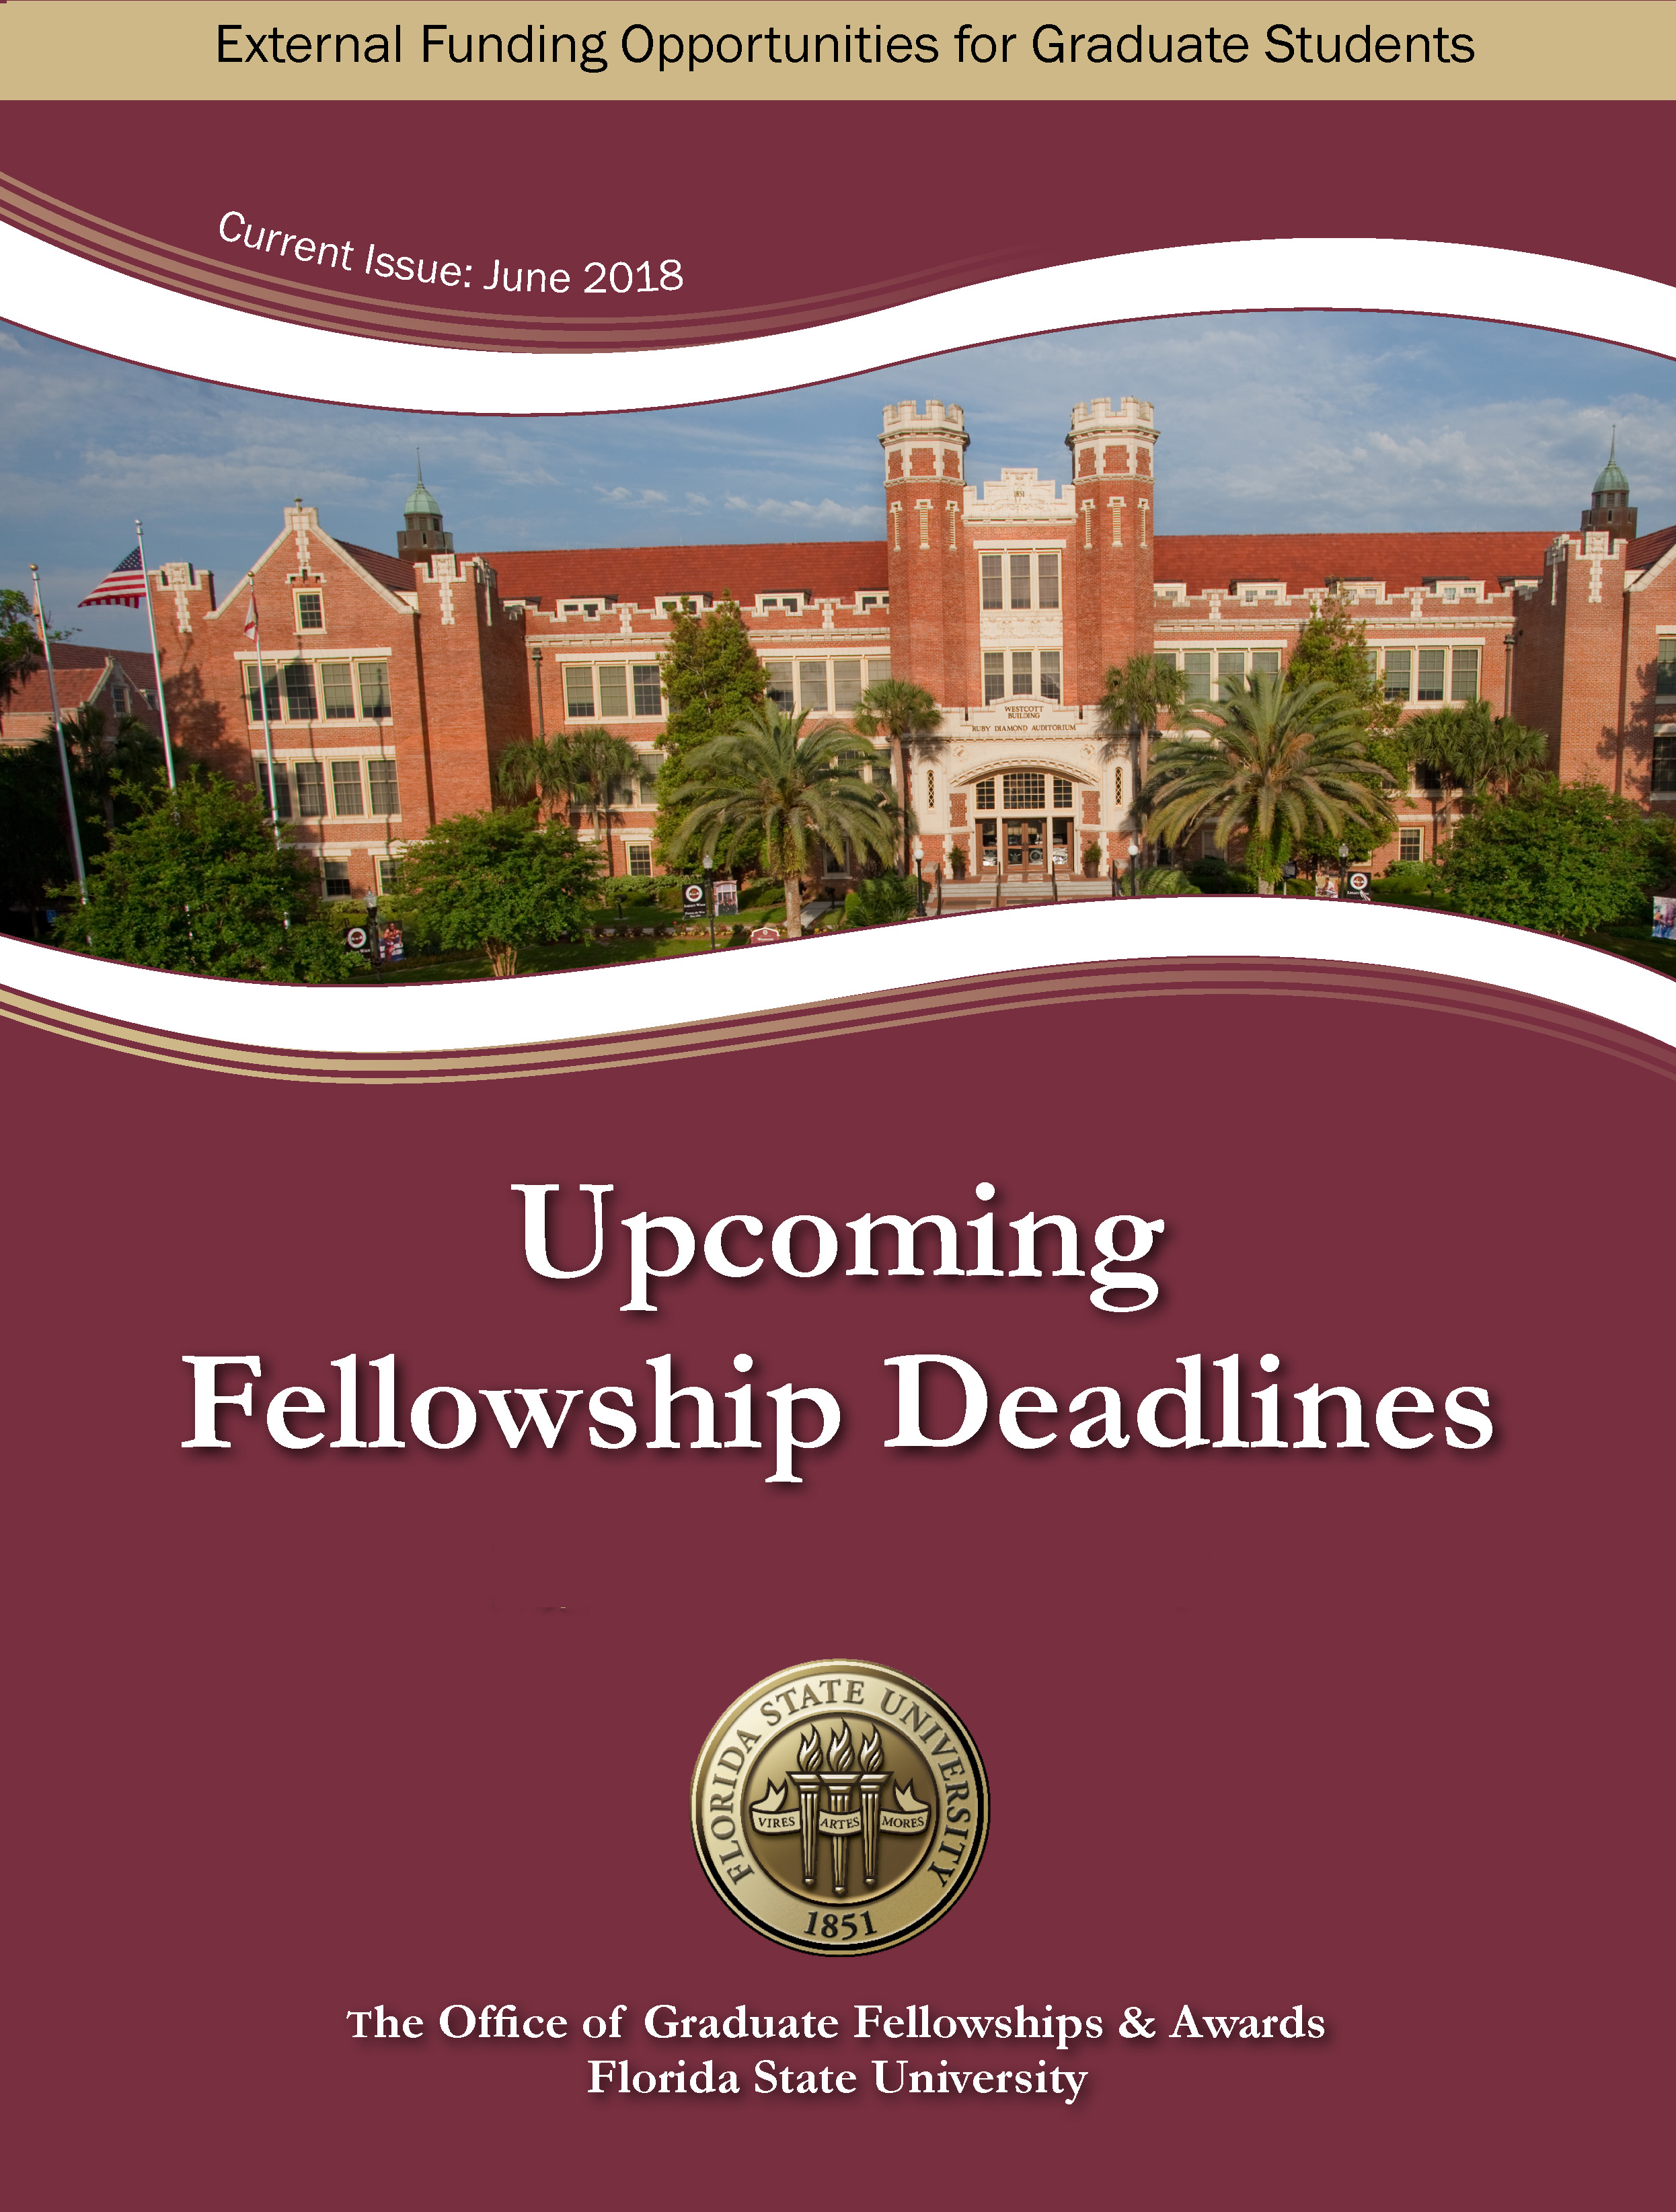 June 2018 Upcoming Fellowship Deadlines Cover.jpg